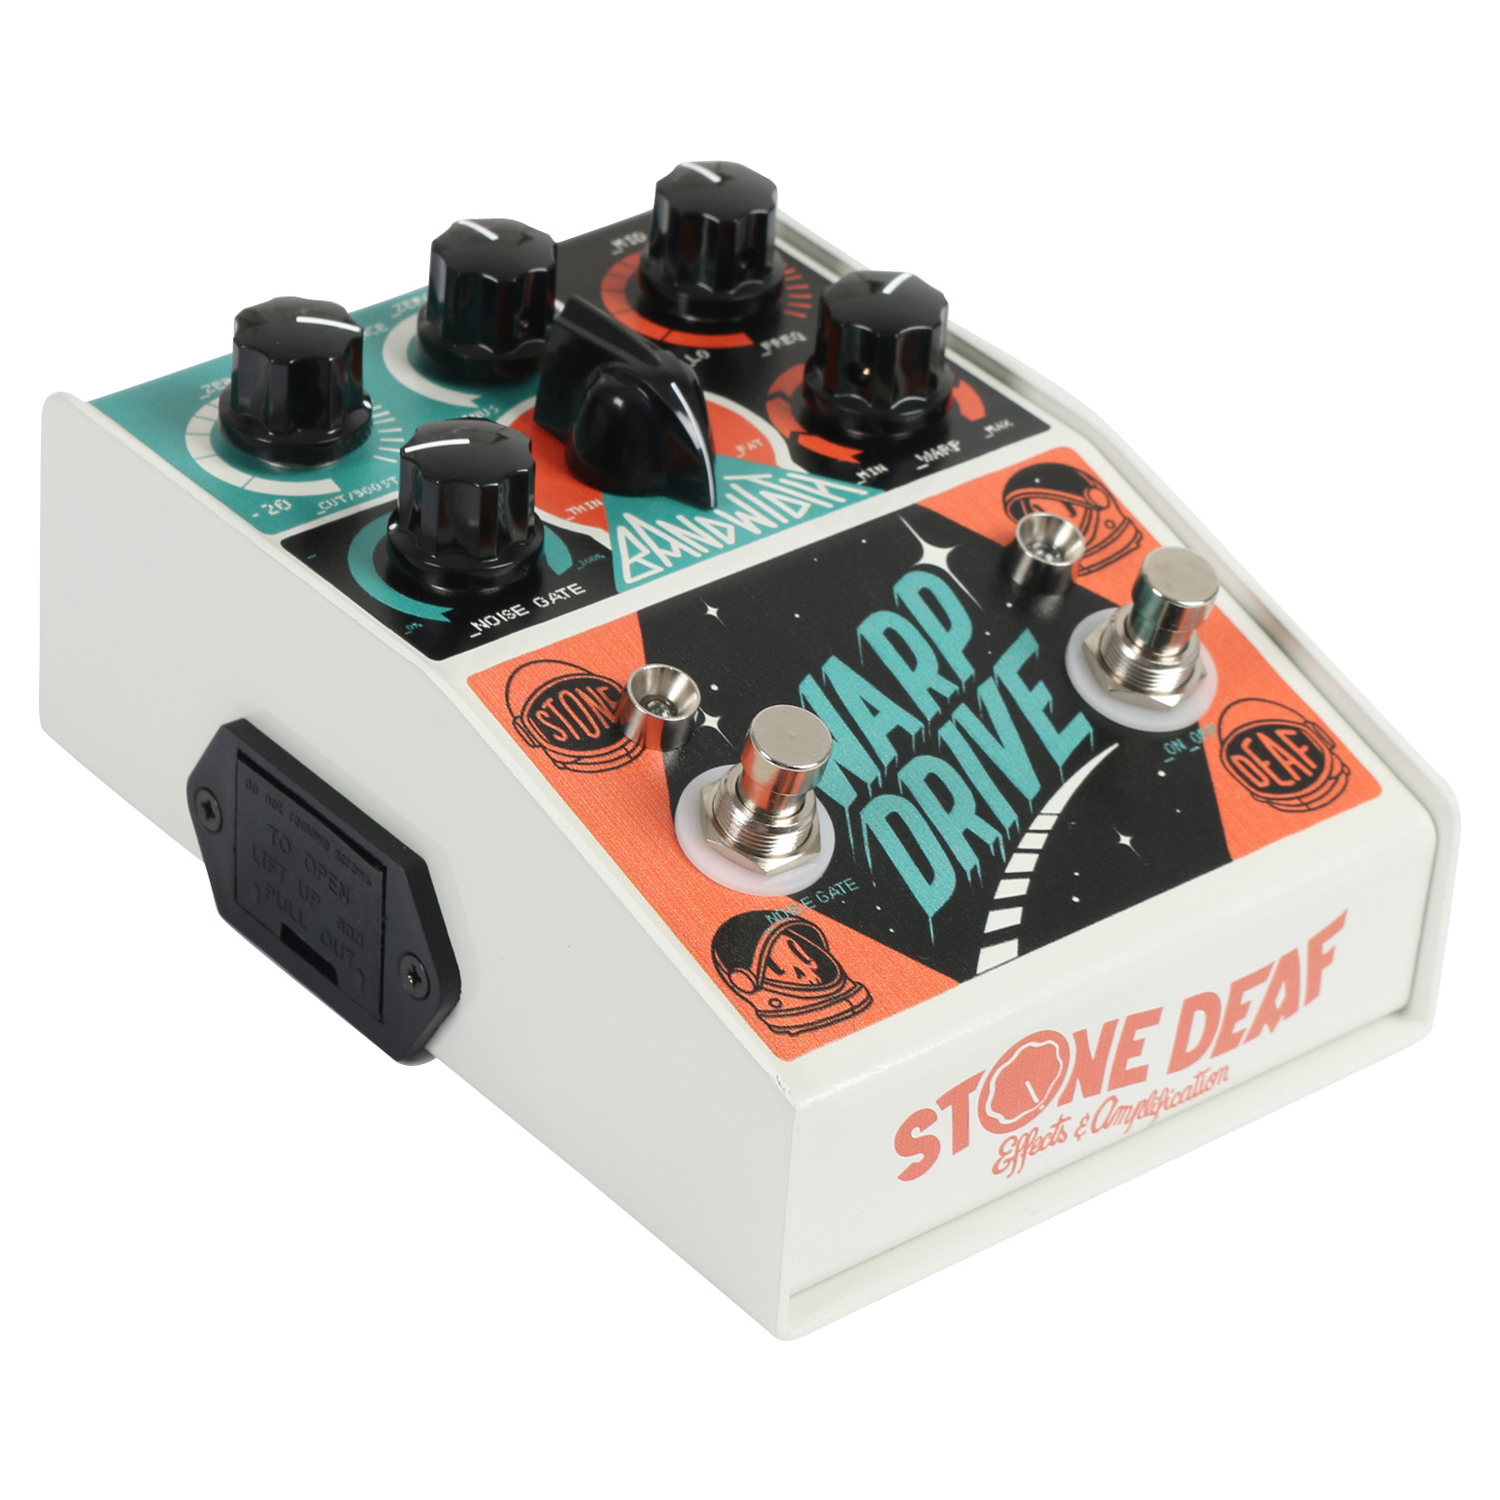 Stone Deaf Warp Drive effects pedal